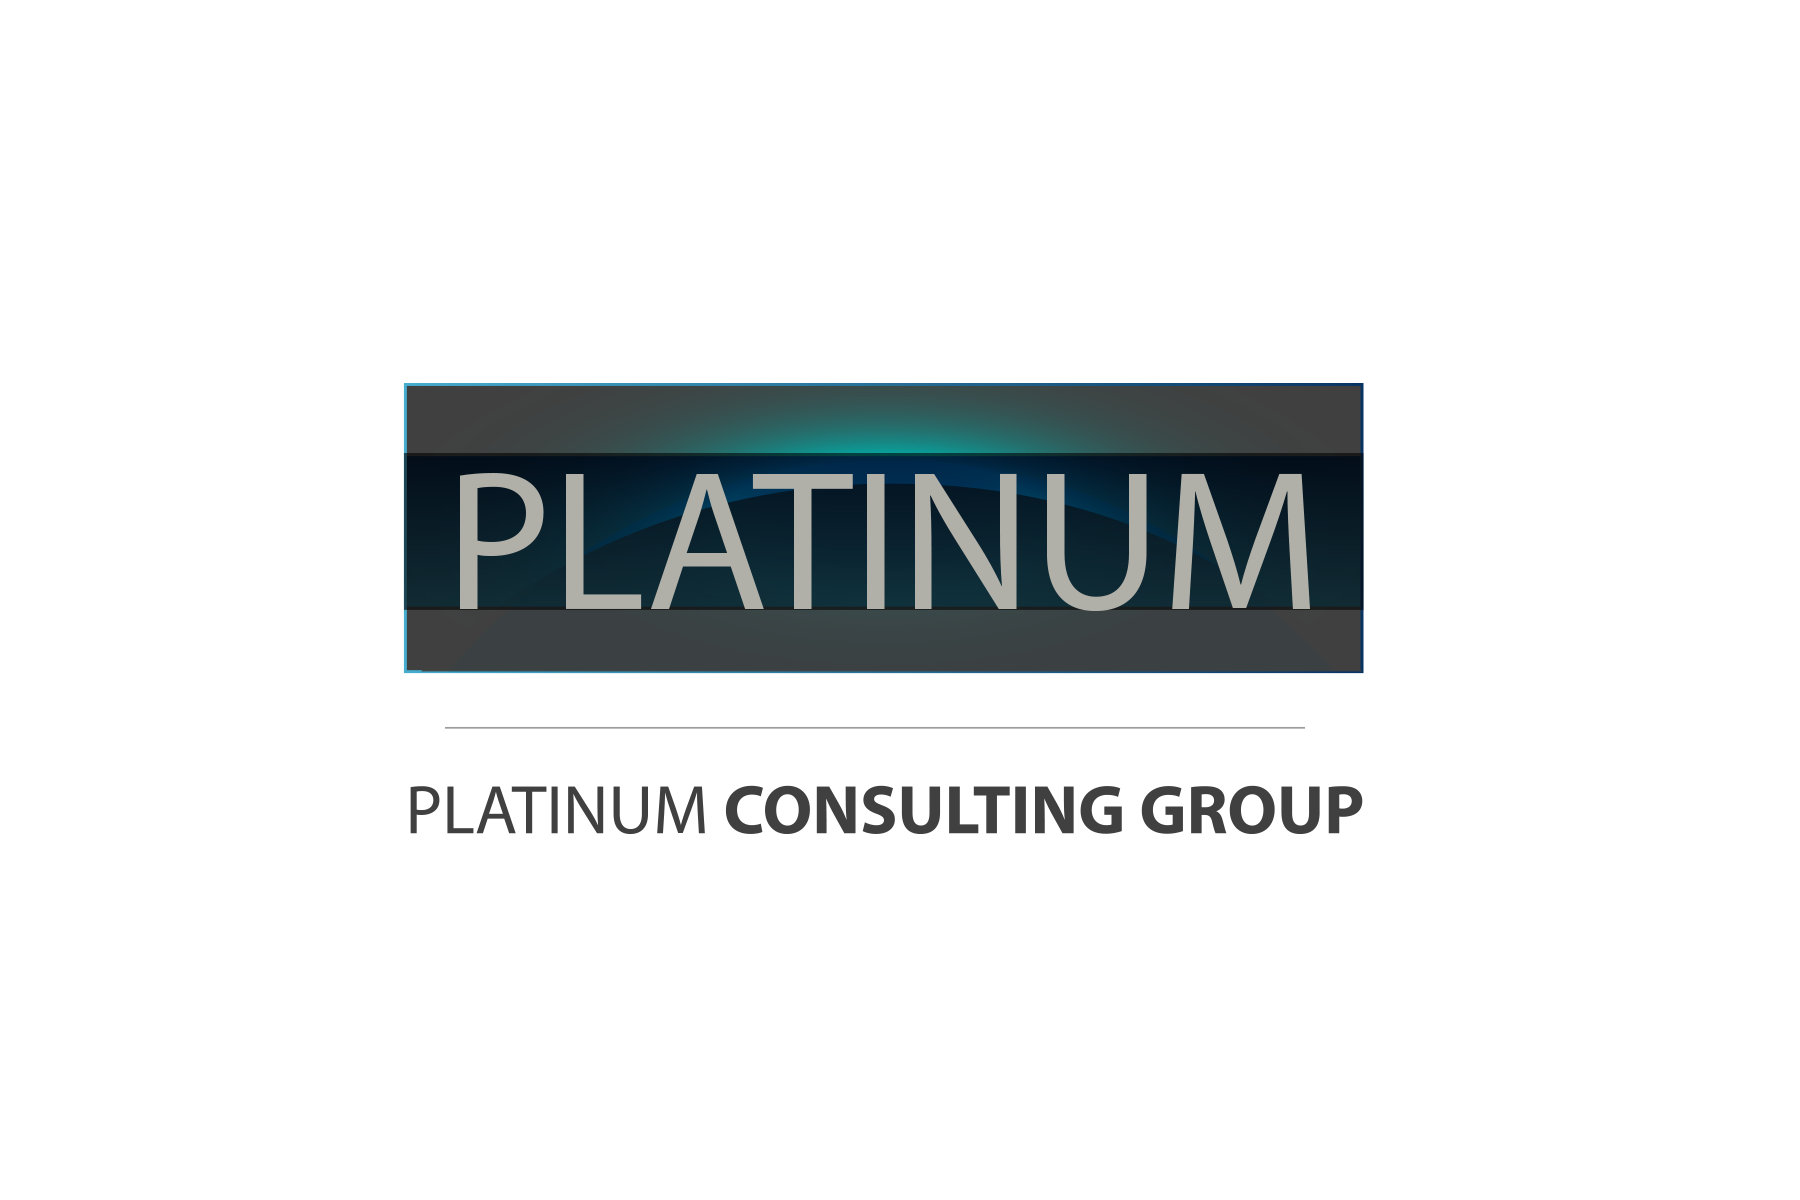 Logo Design by Rozsa Matyas - Entry No. 65 in the Logo Design Contest Captivating Logo Design for Platinum Consulting Group.